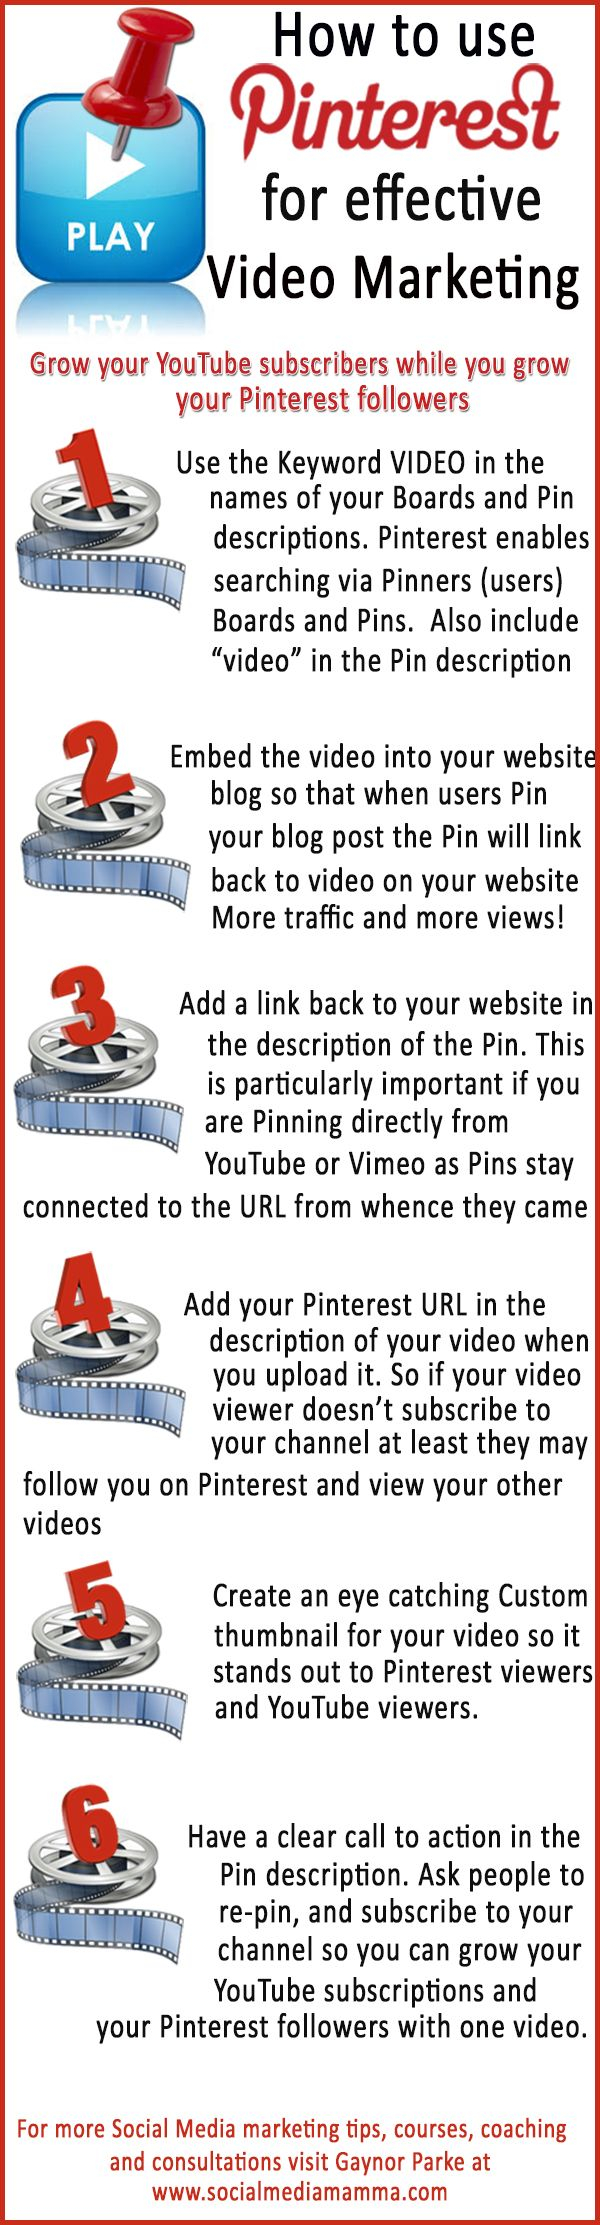 How To Use Pinterest For Effective Video Marketing #infographic